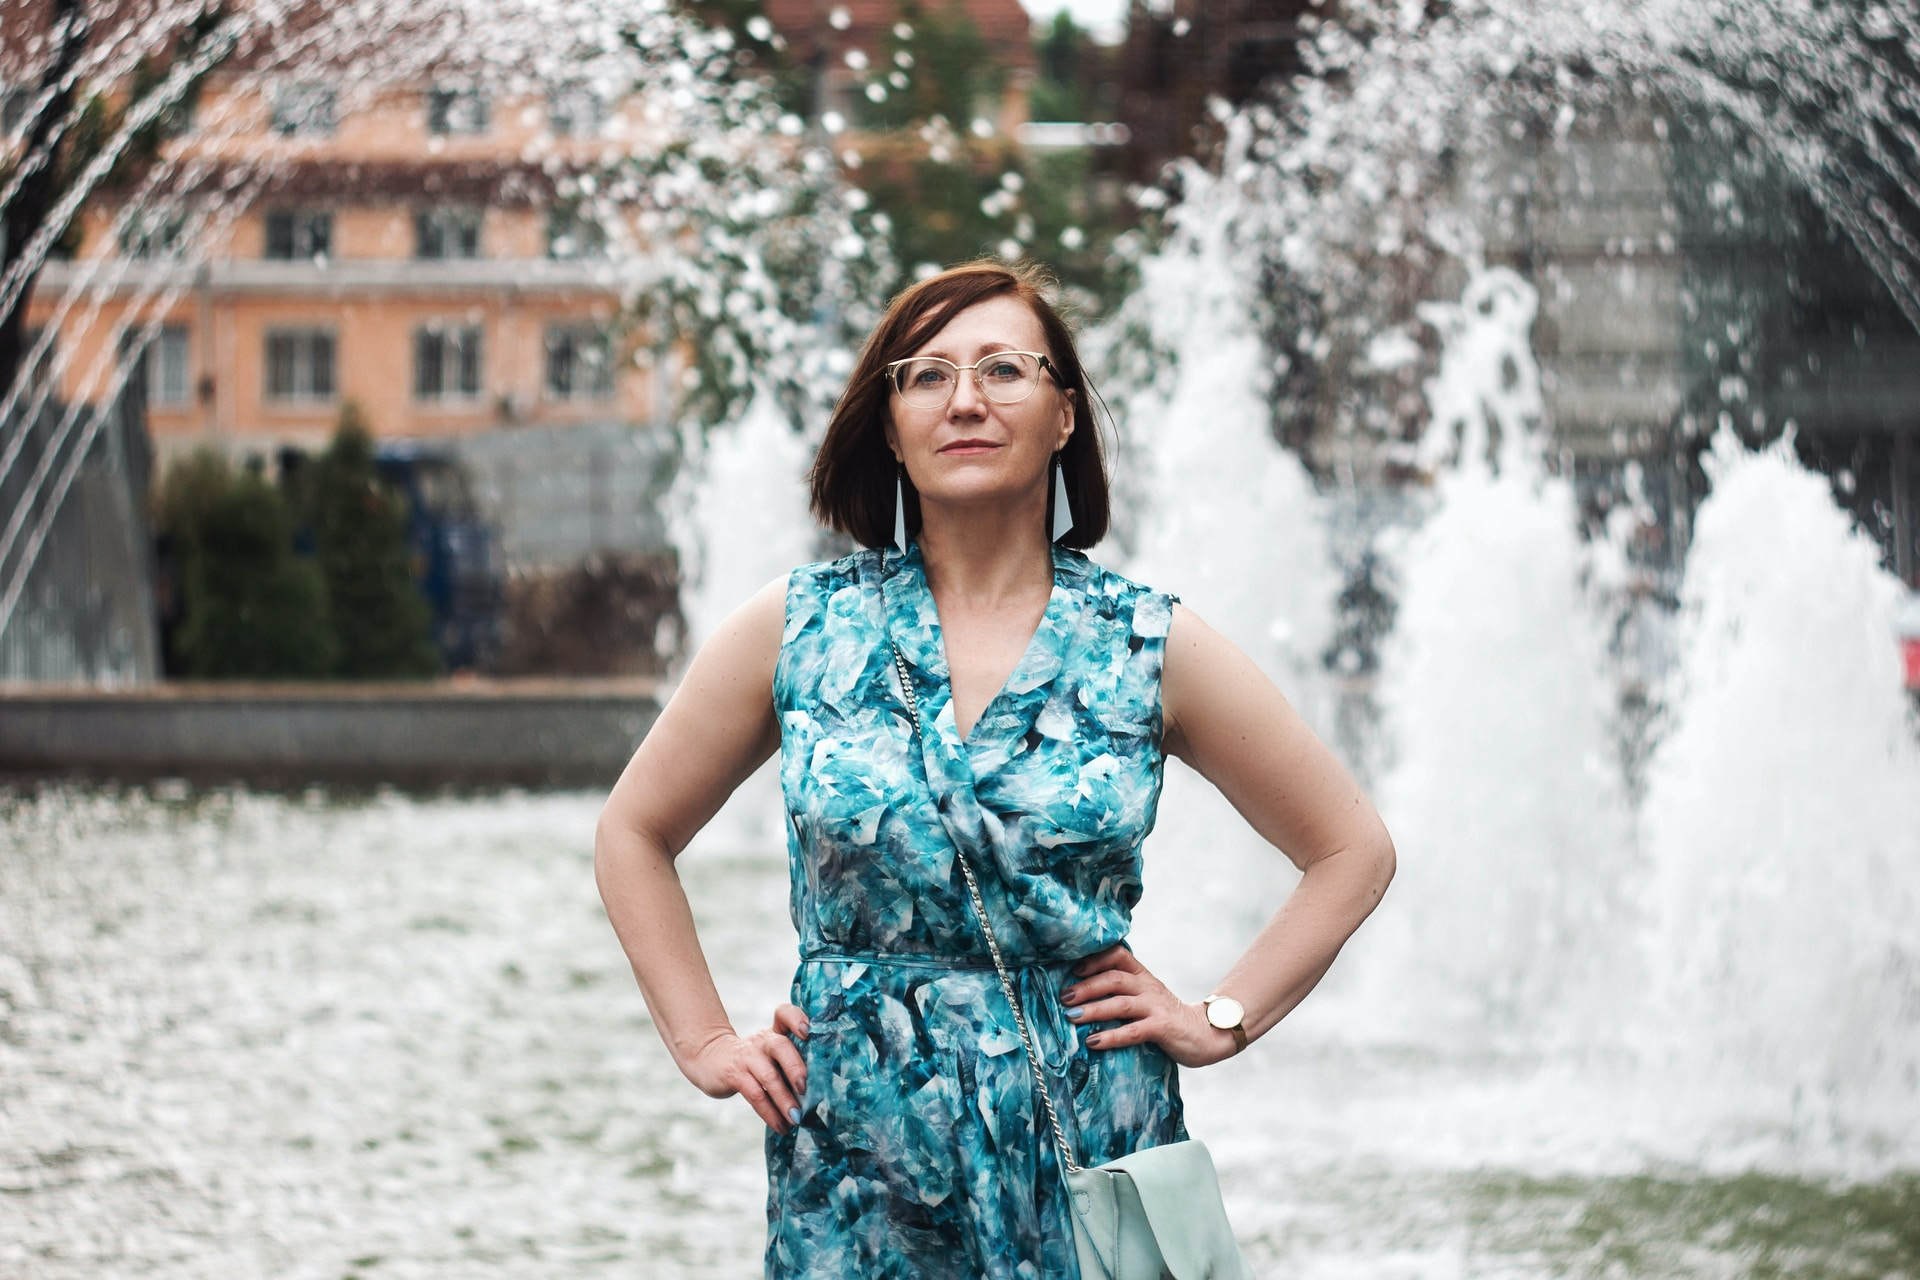 woman in blue and white floral sleeveless dress standing on snow covered ground during daytime